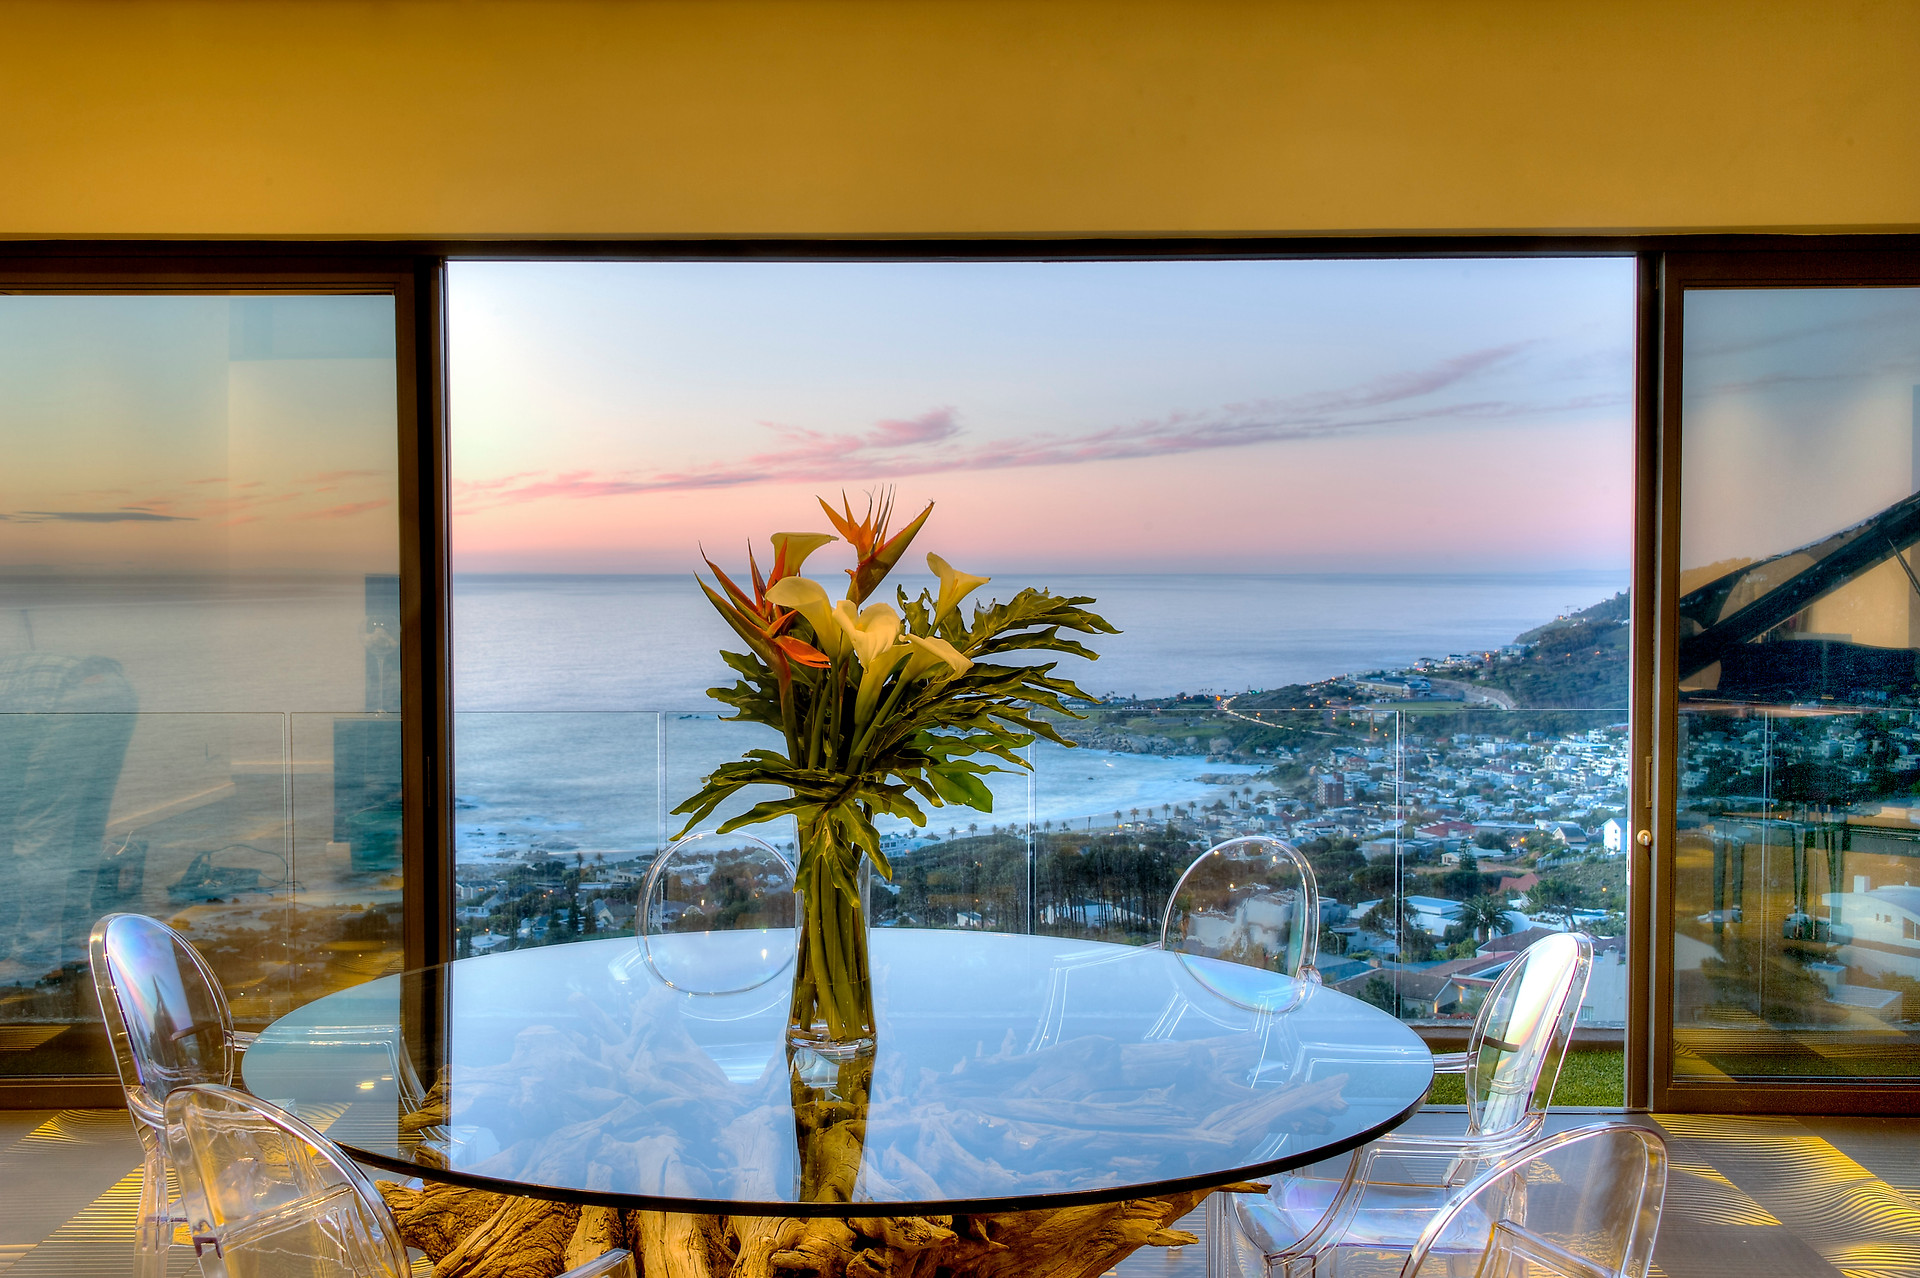 Penthouse Suite, Sea Star Rocks, Camps Bay